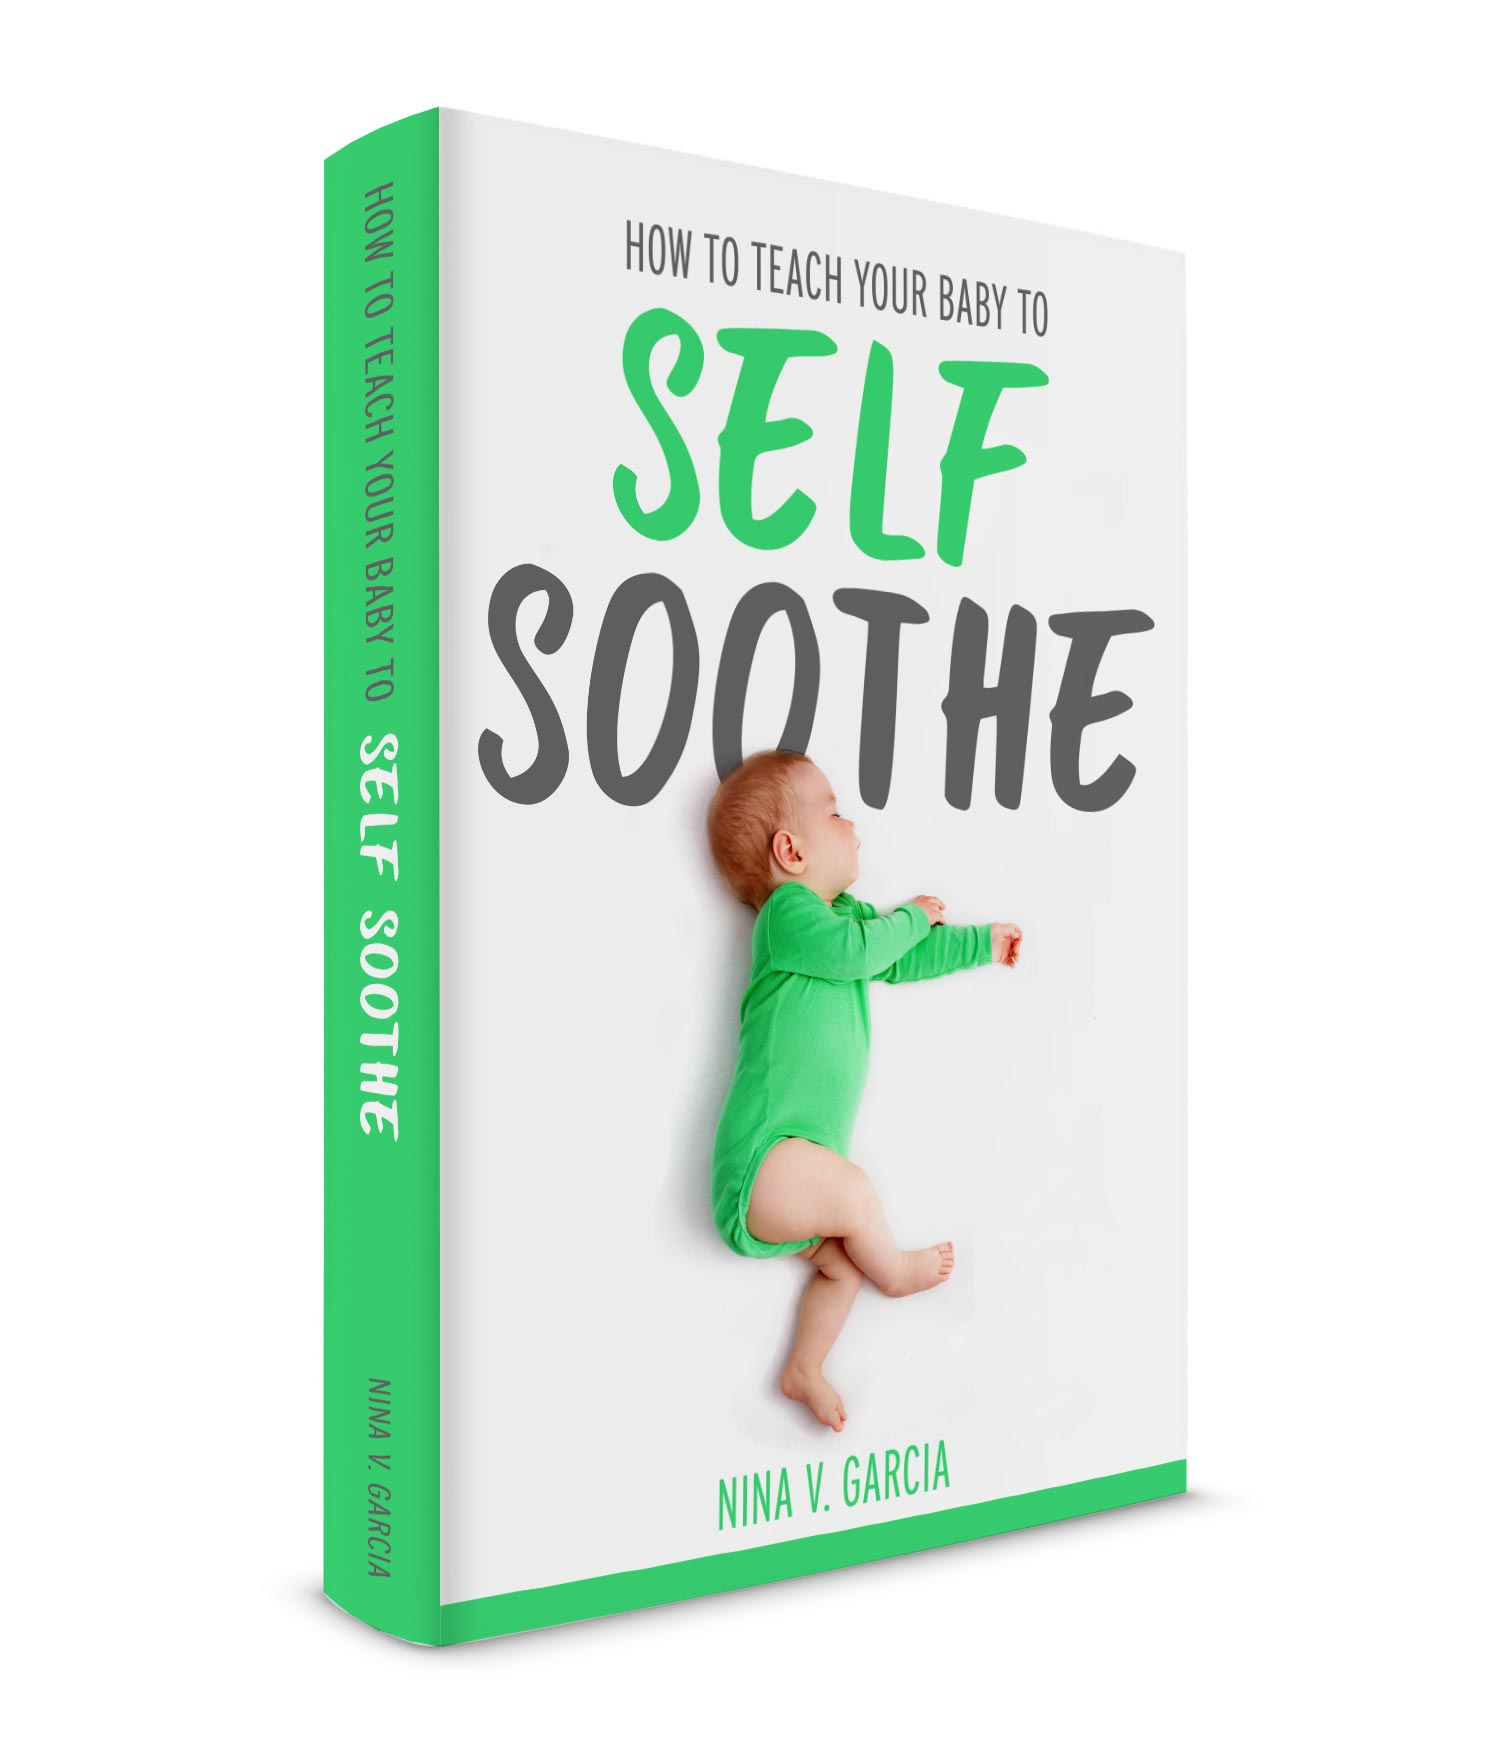 Ebook on how to teach your baby to self soothe